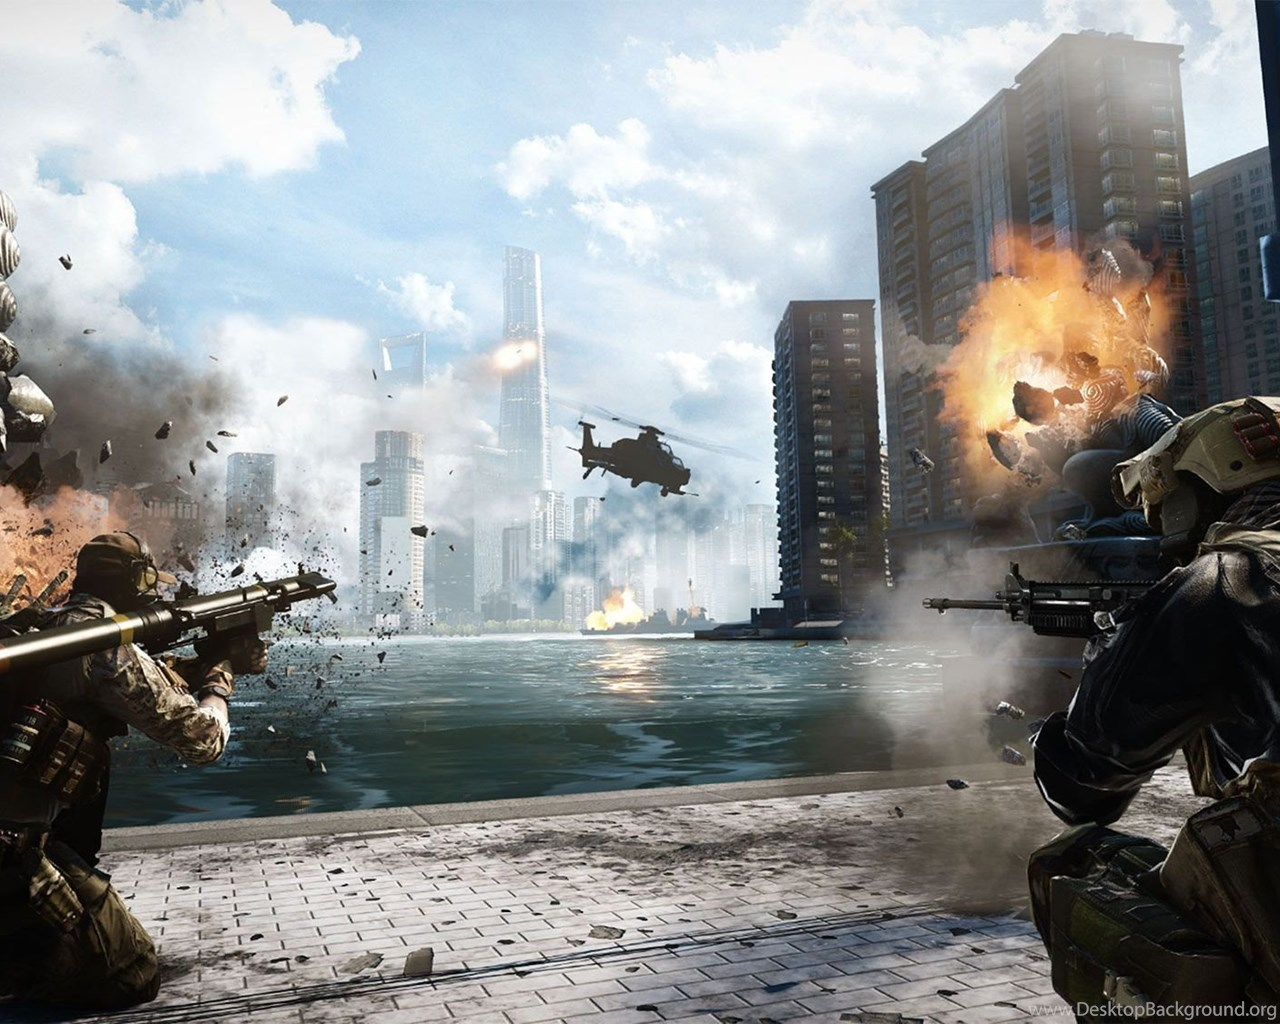 Battlefield 4 Wallpapers Desktop Background